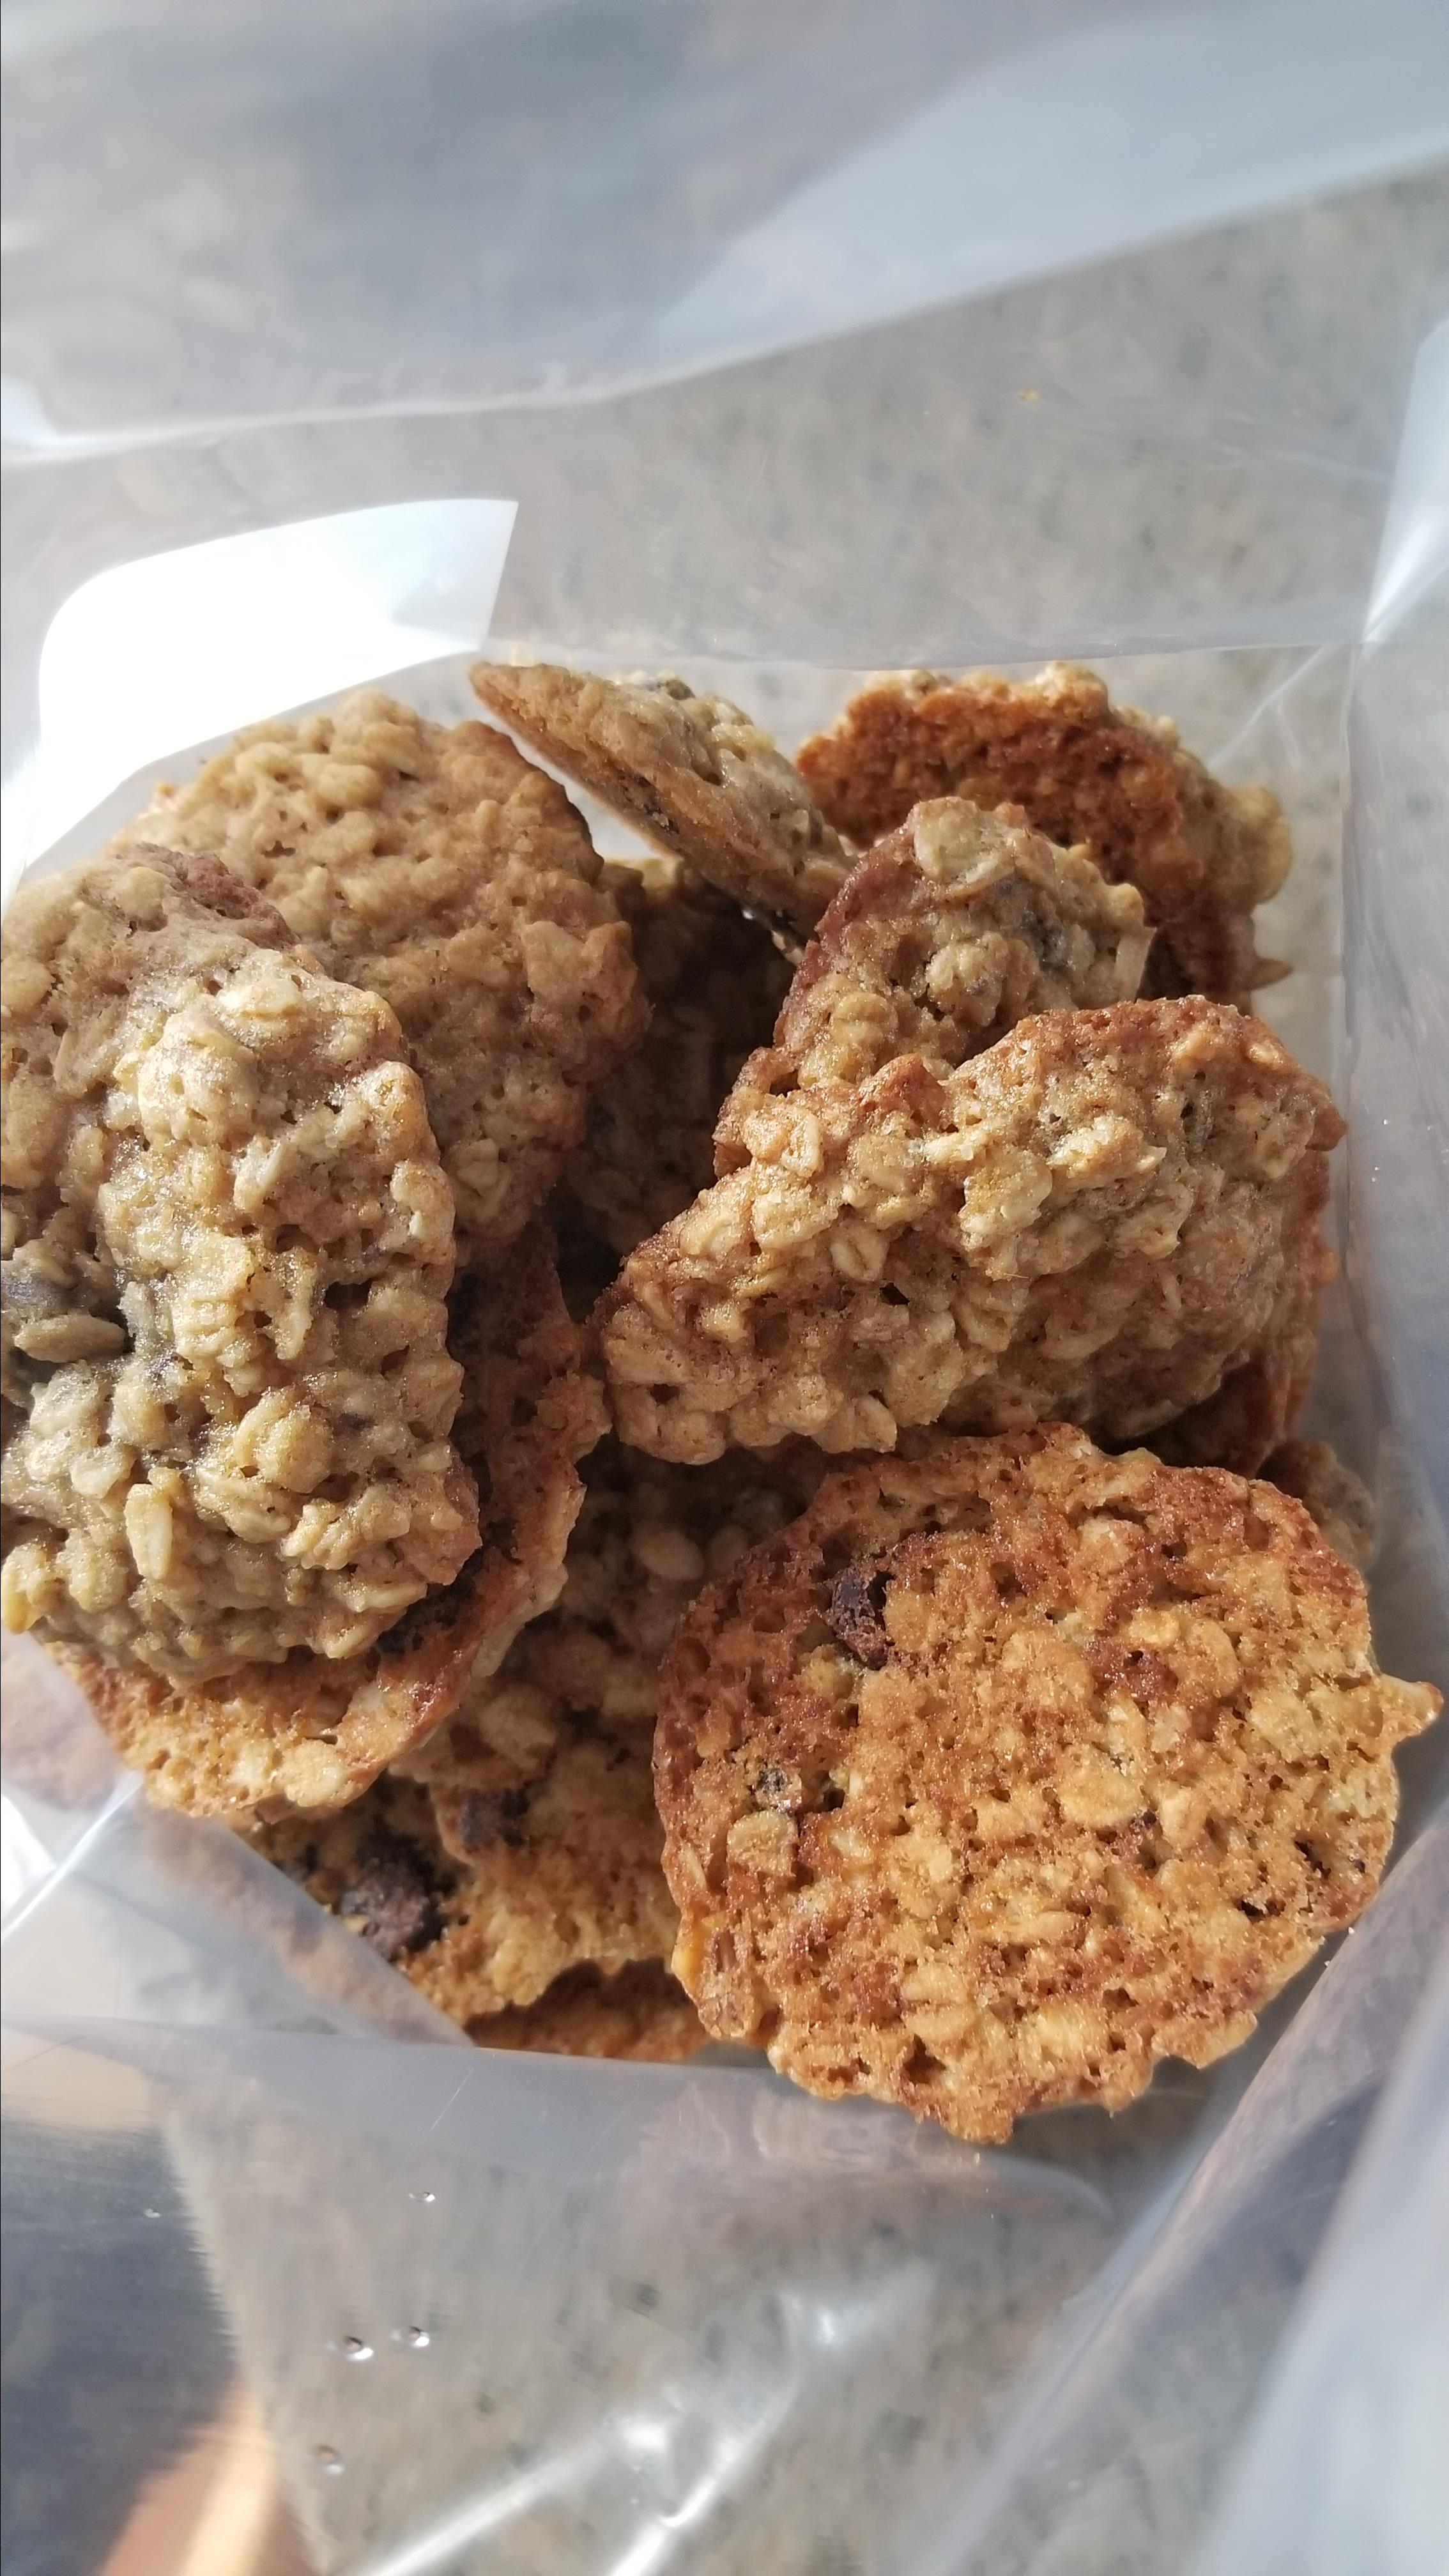 Henry and Maudie's Oatmeal Cookies